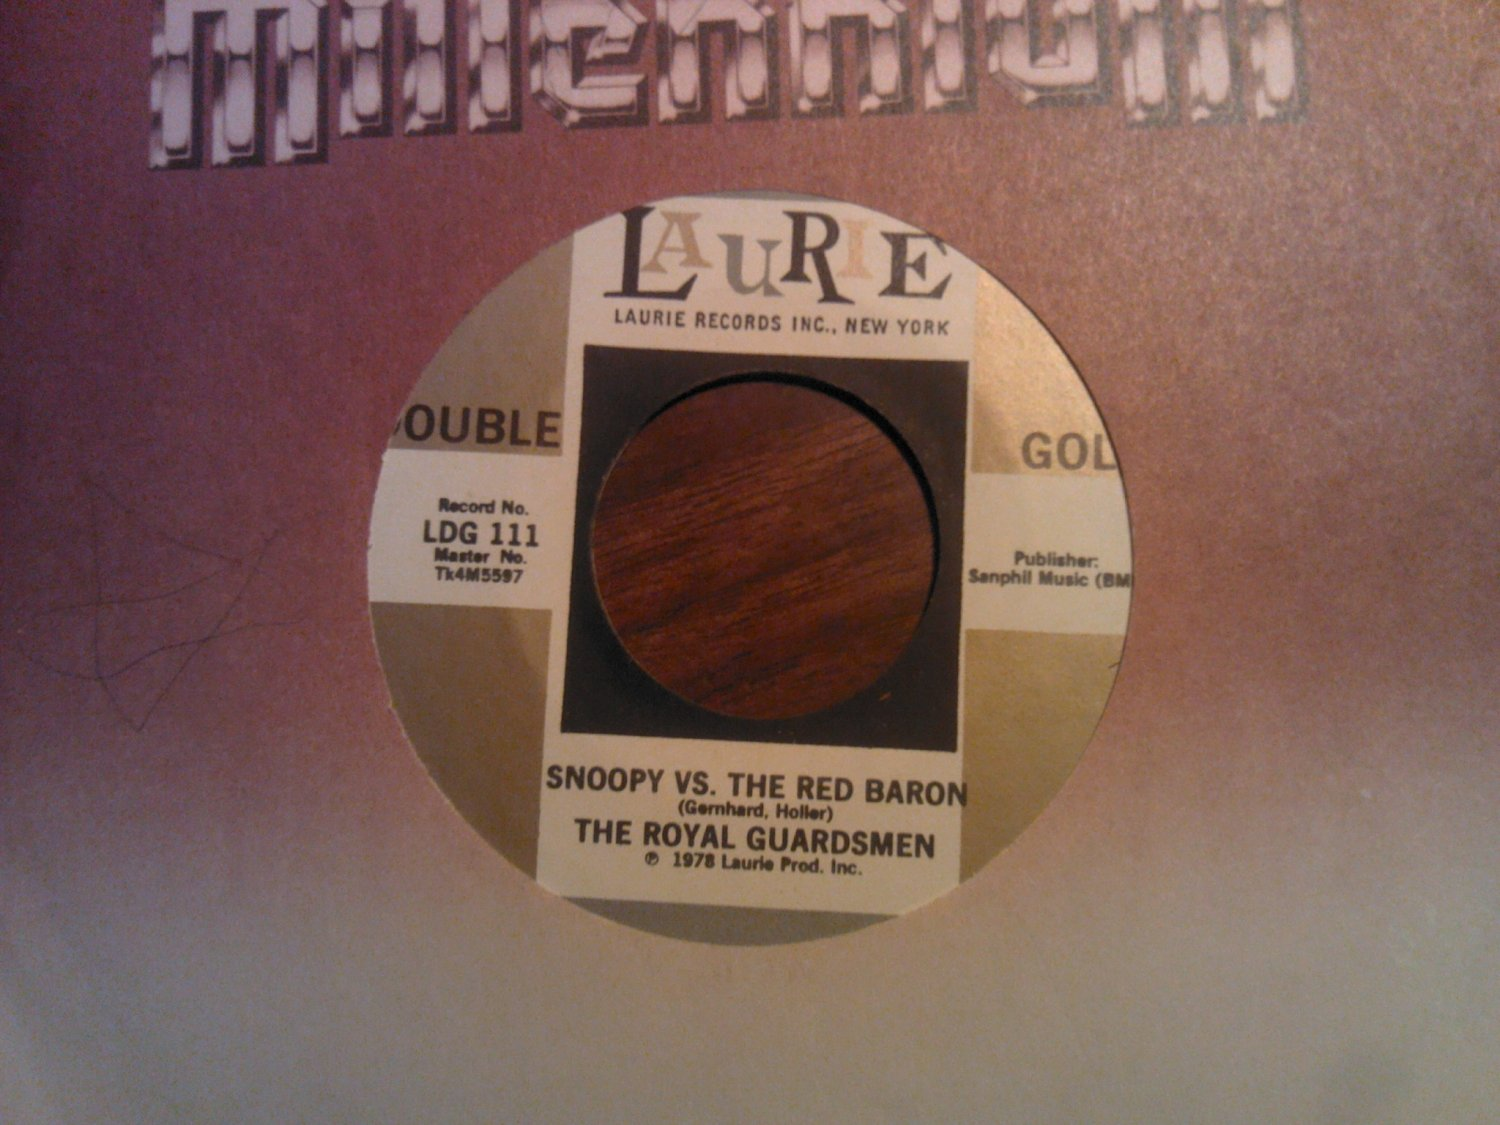 45 THE ROYAL GAURDSMEN Snoopy vs the Red Baron b/w Return Of laurie vinyl record VINTAGE